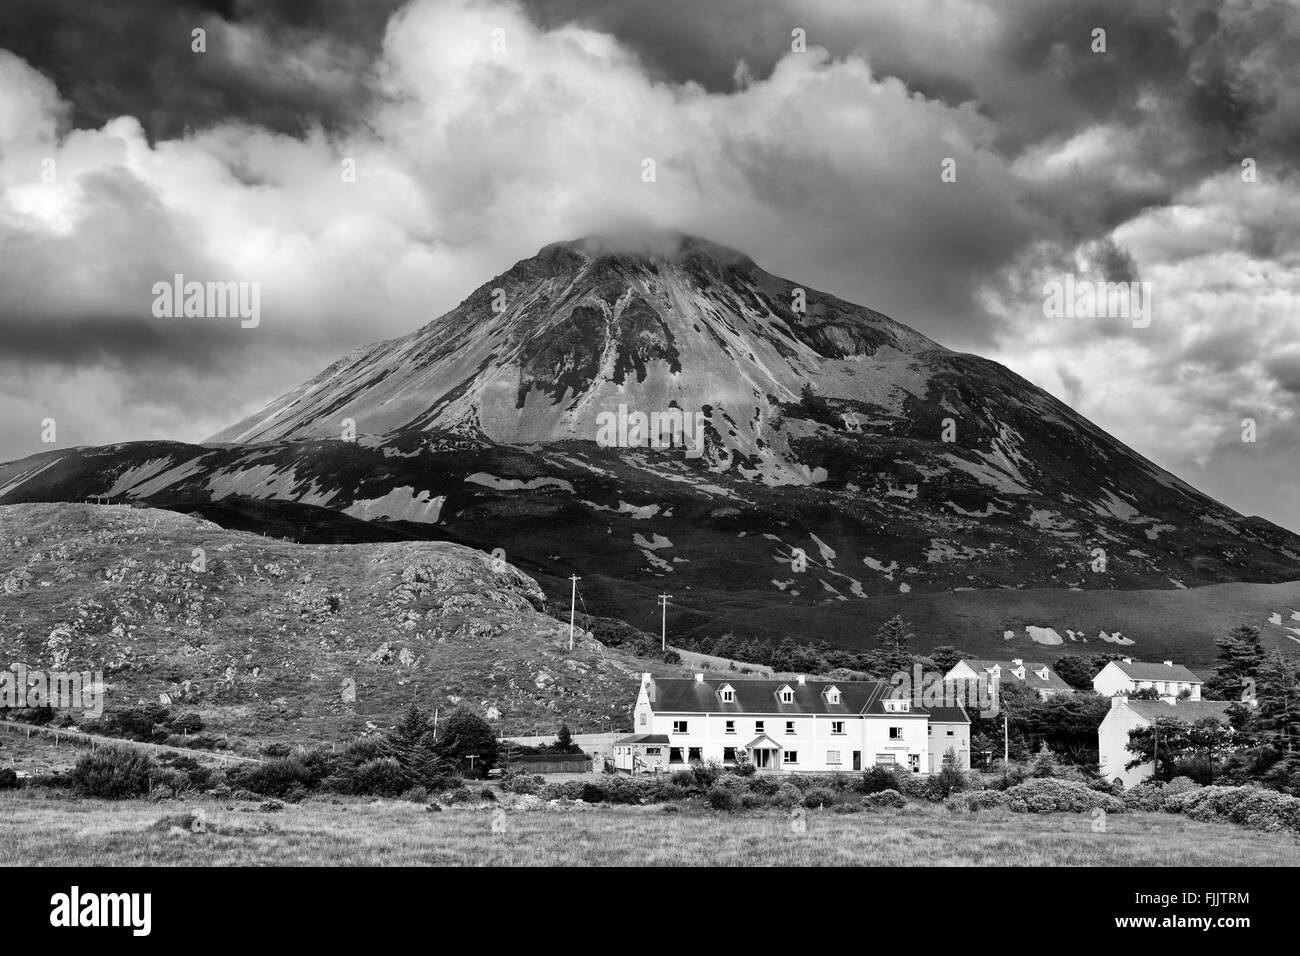 Mount Errigal & Dunlewy Village, County Donegal, Ireland - Stock Image